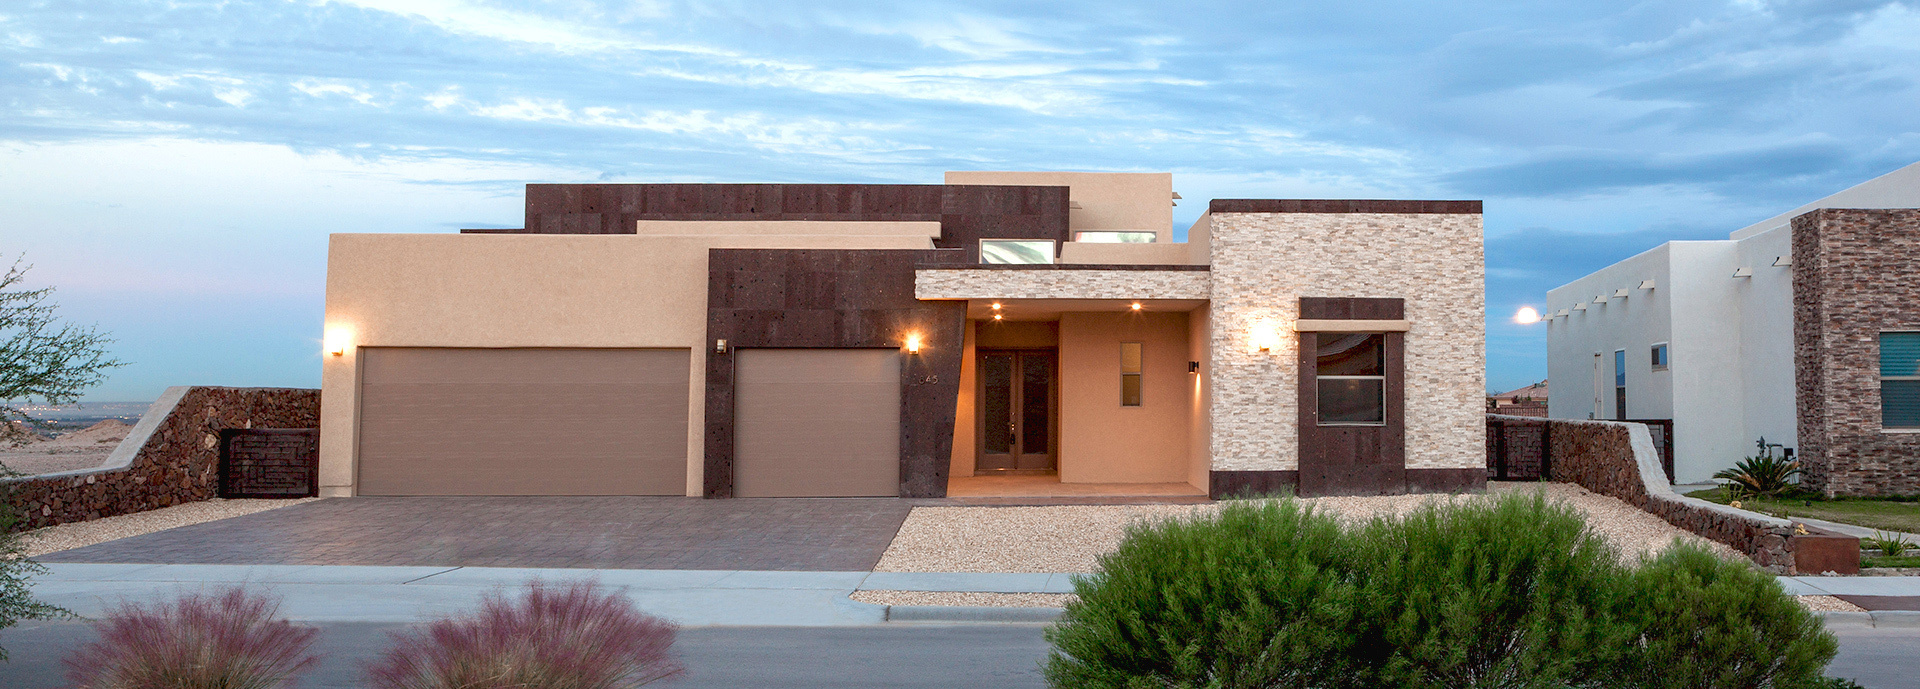 Tropicana homes el paso homes el paso home builder for El paso homes for sale